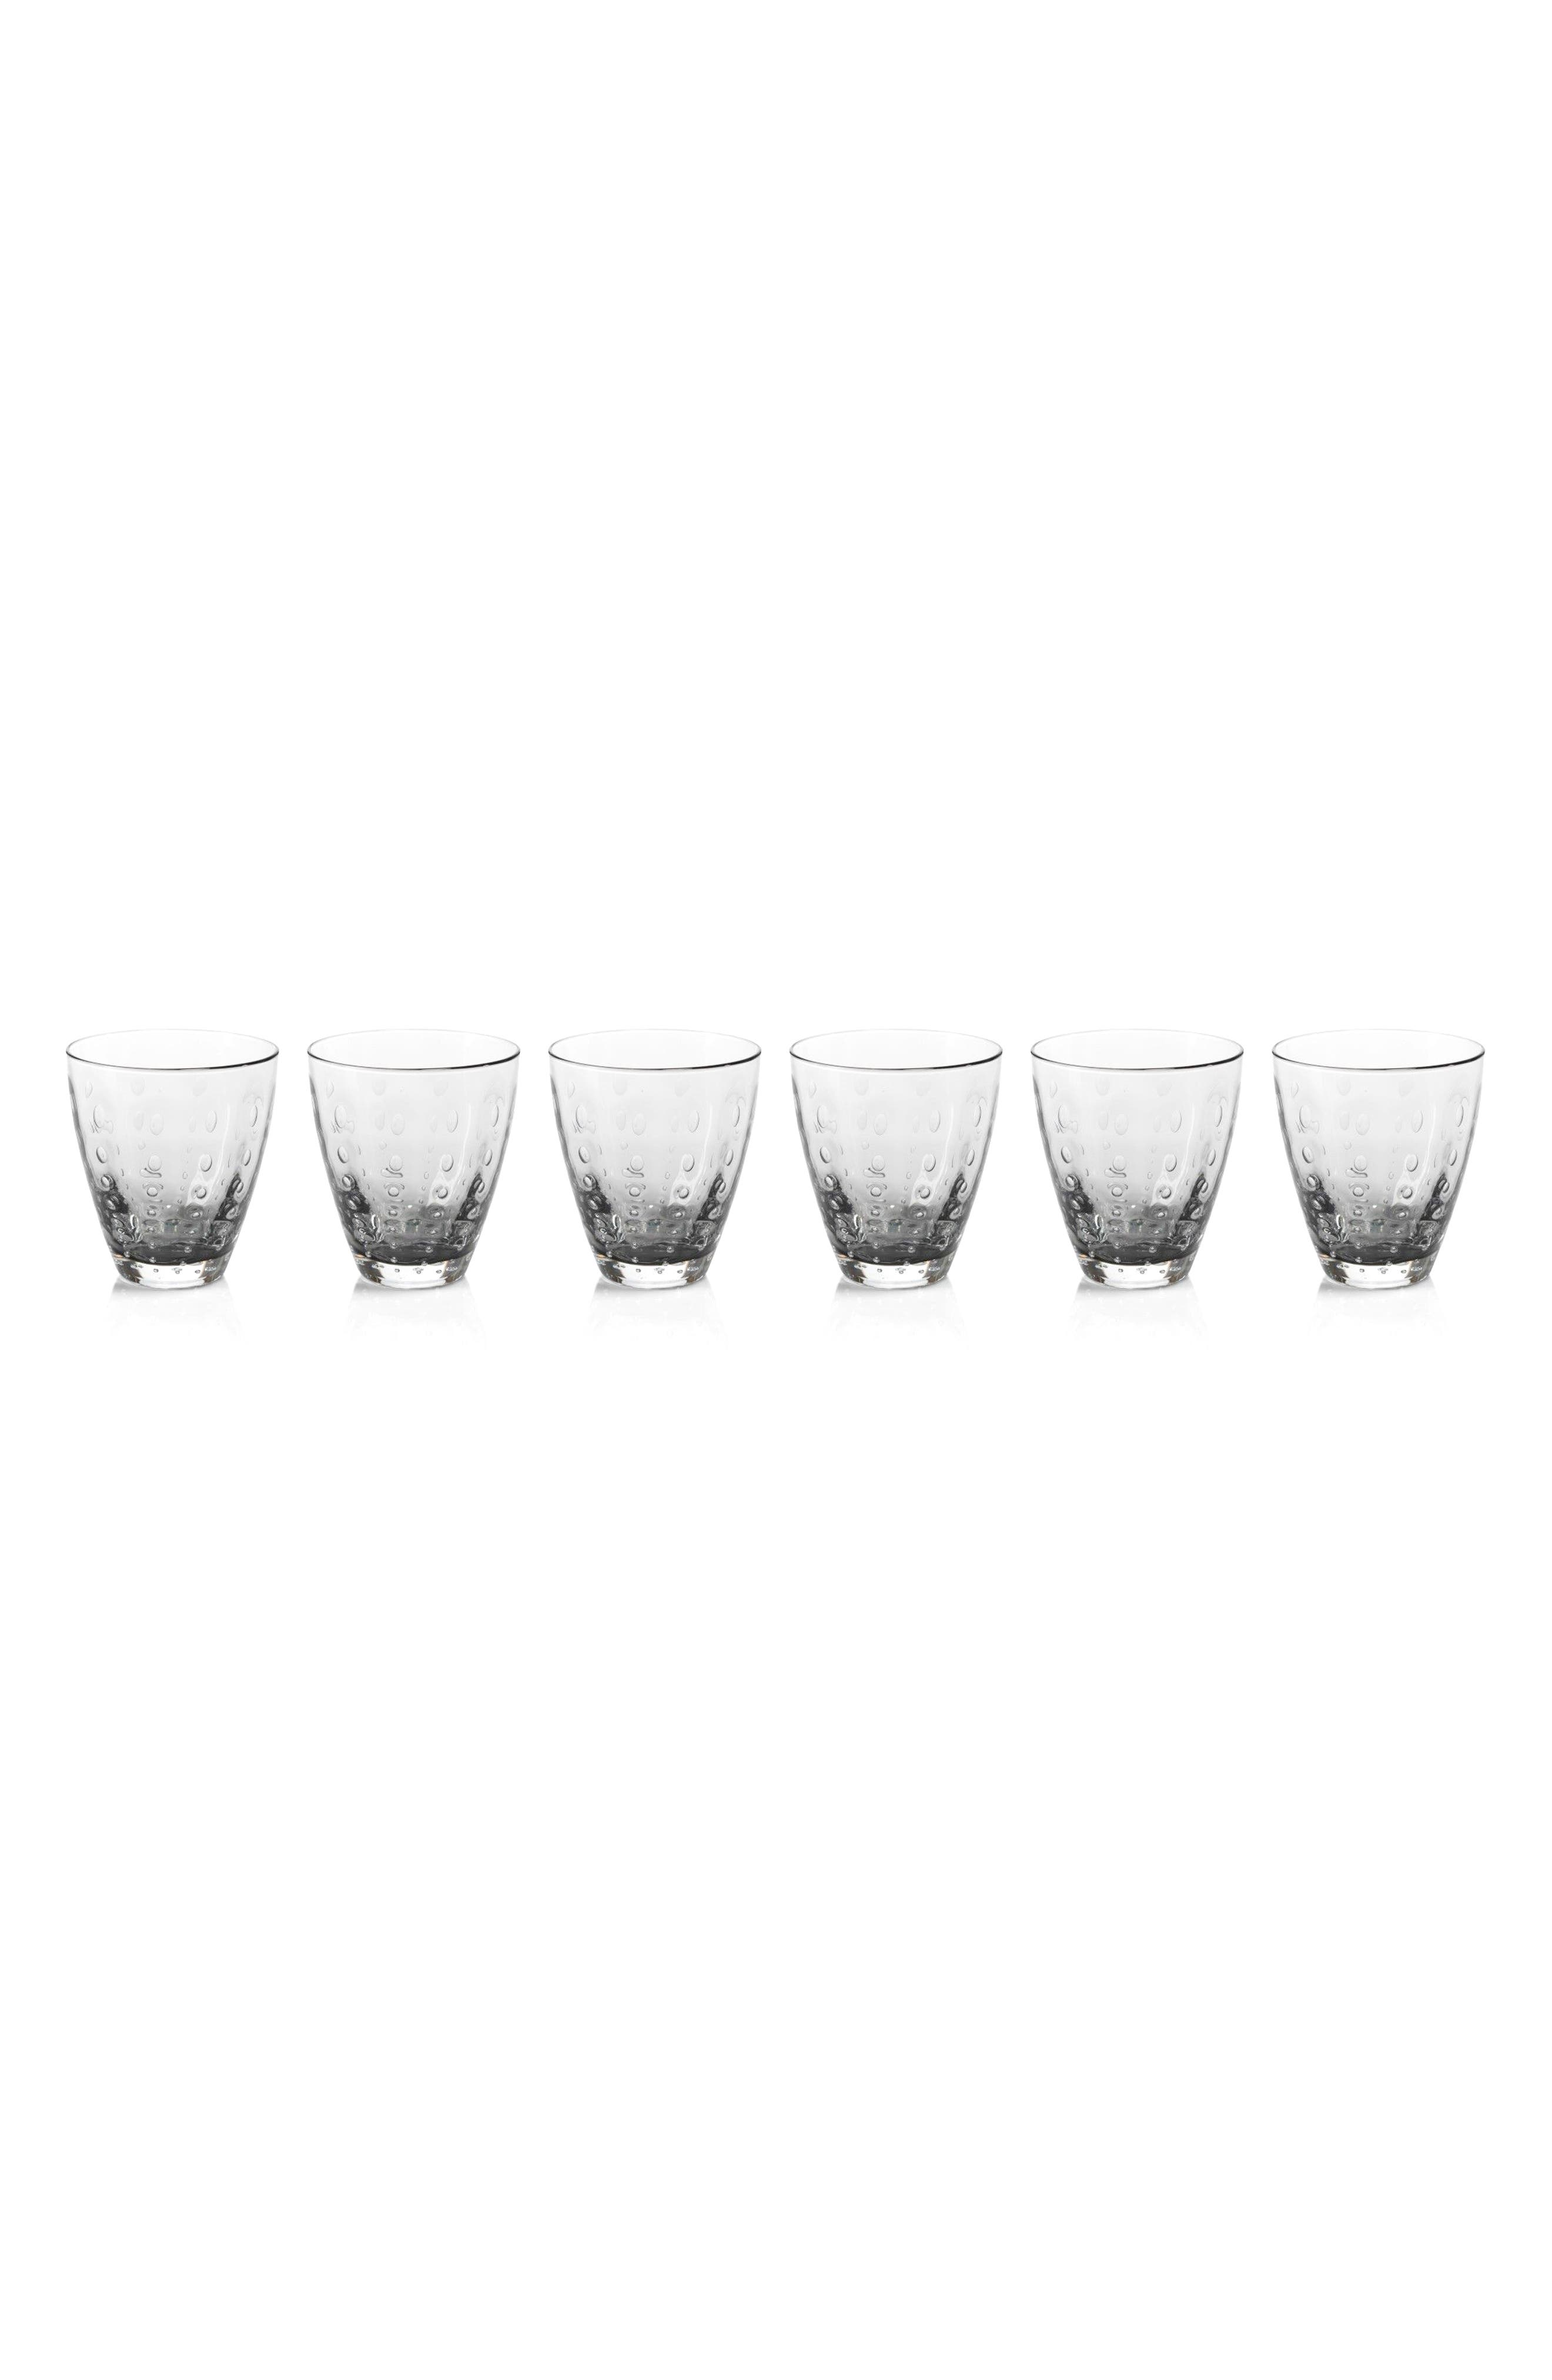 Bubbled Set of 6 Double Old Fashioned Glasses,                         Main,                         color, 100